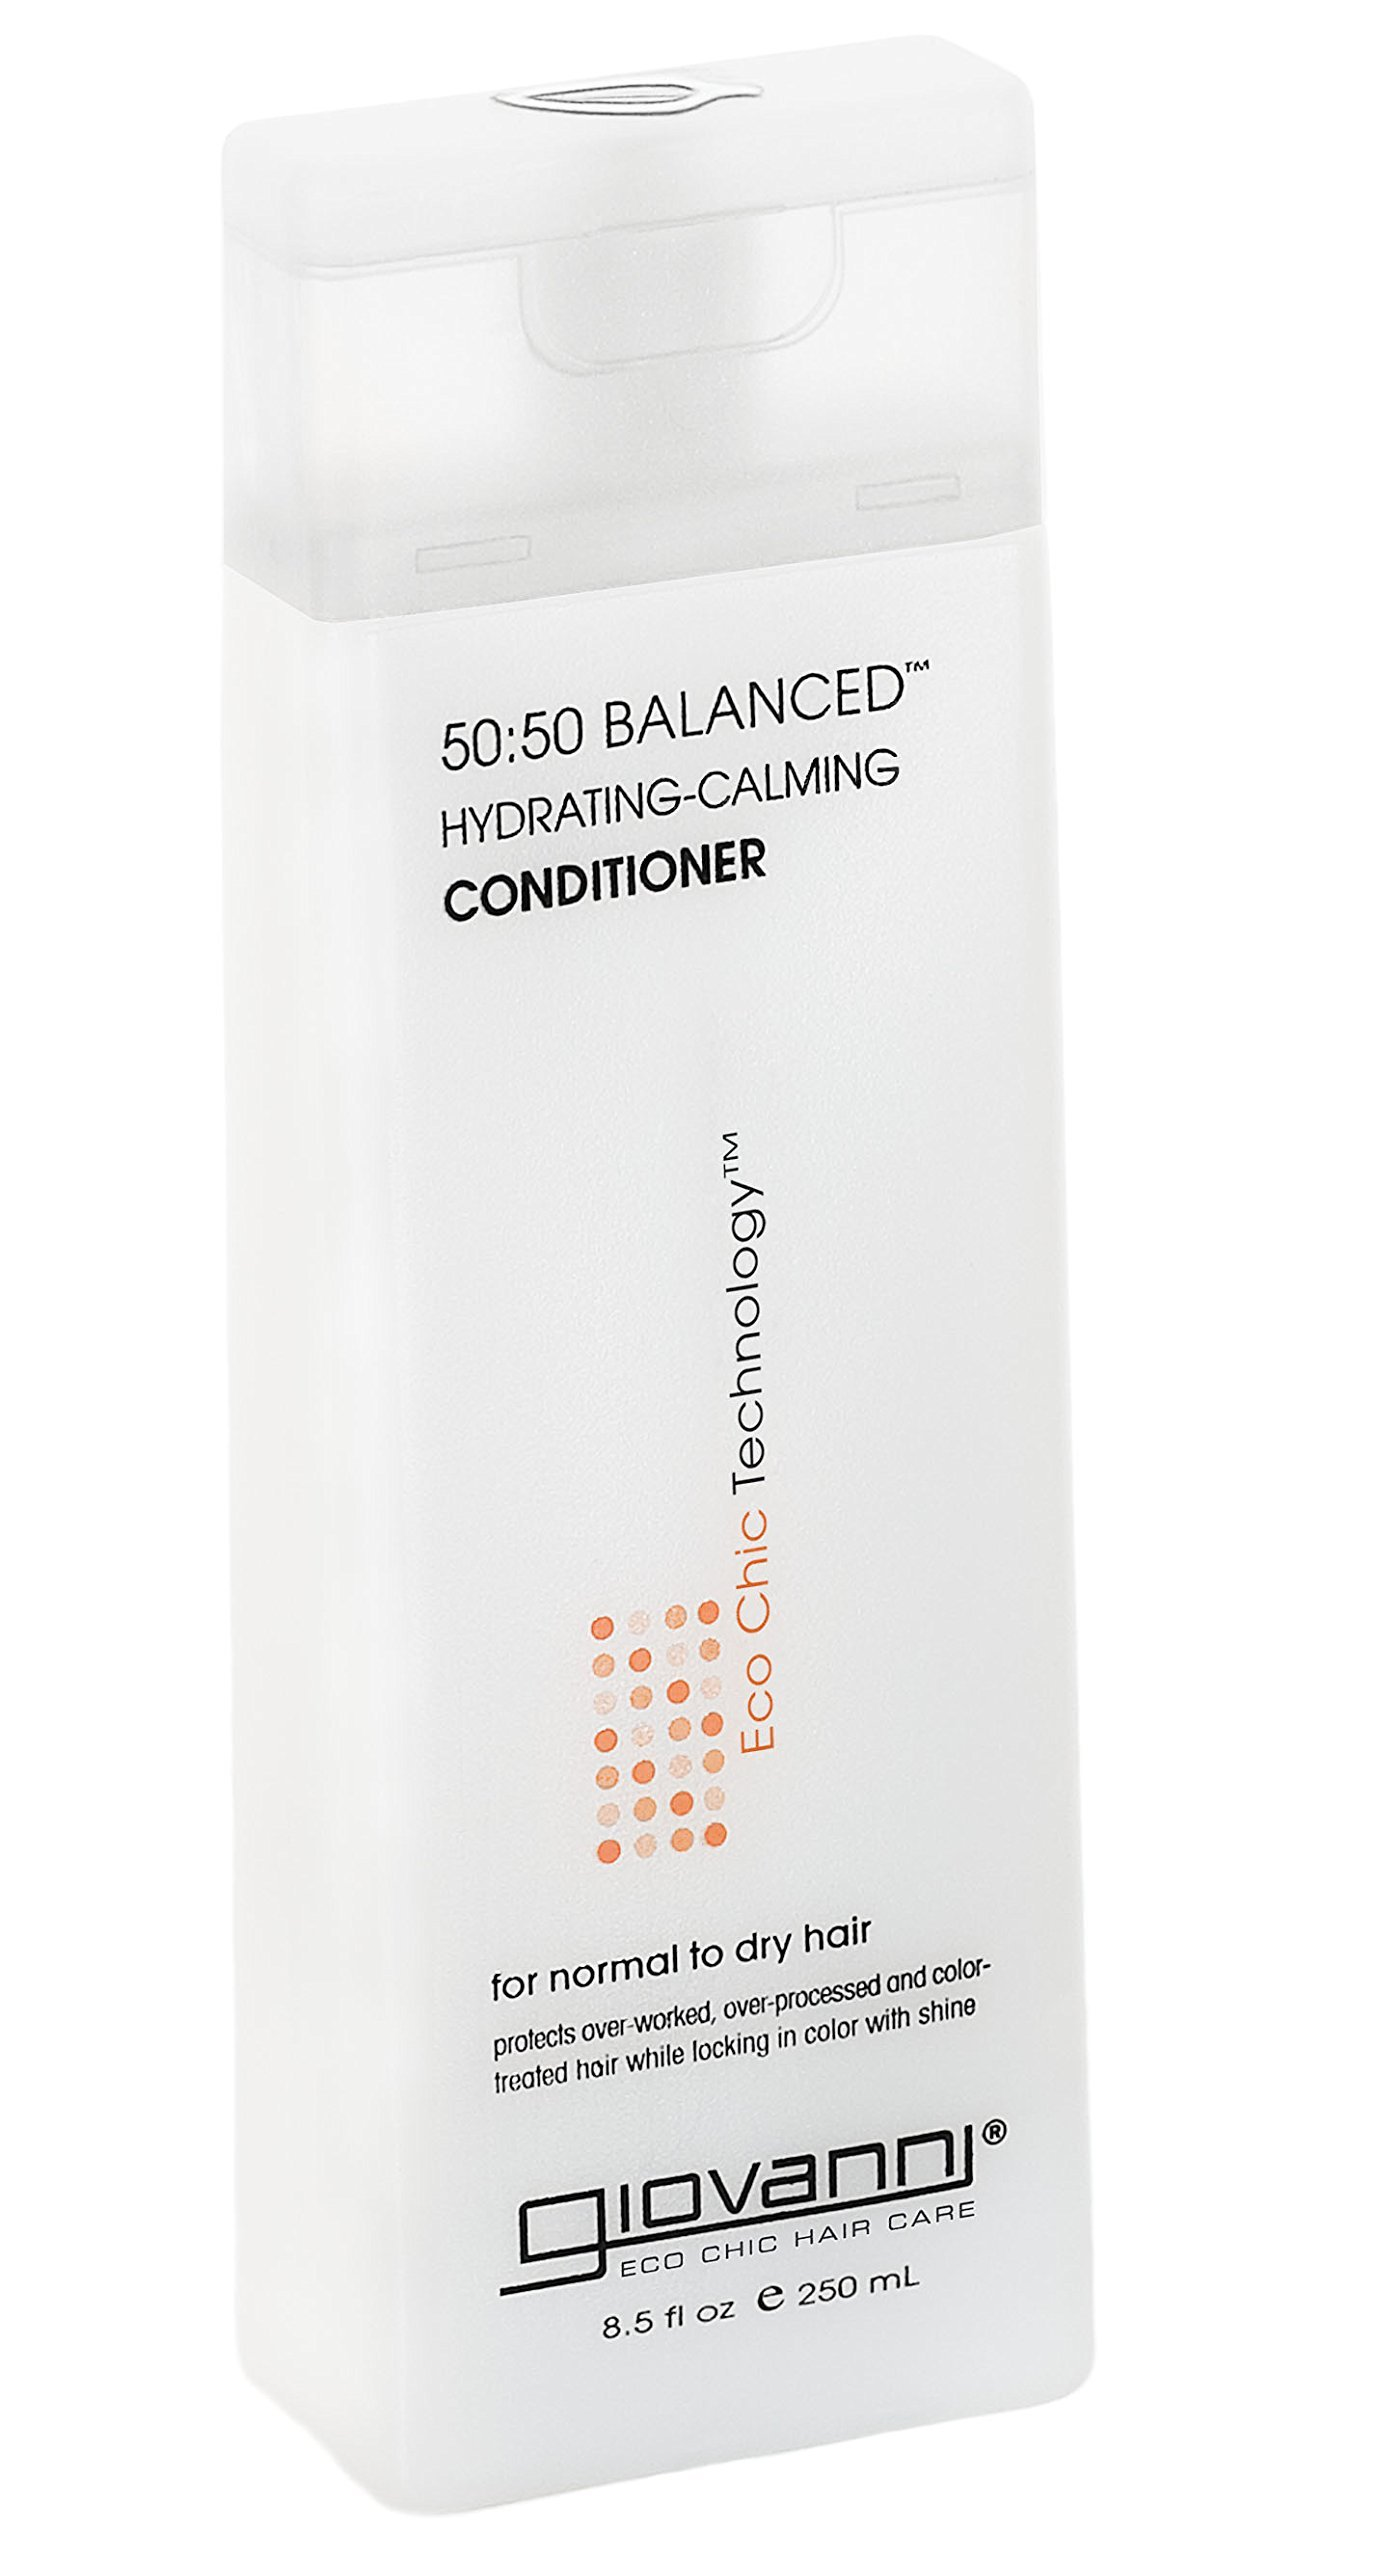 GIOVANNI 50:50 Balanced Conditioner, 8.5 Oz